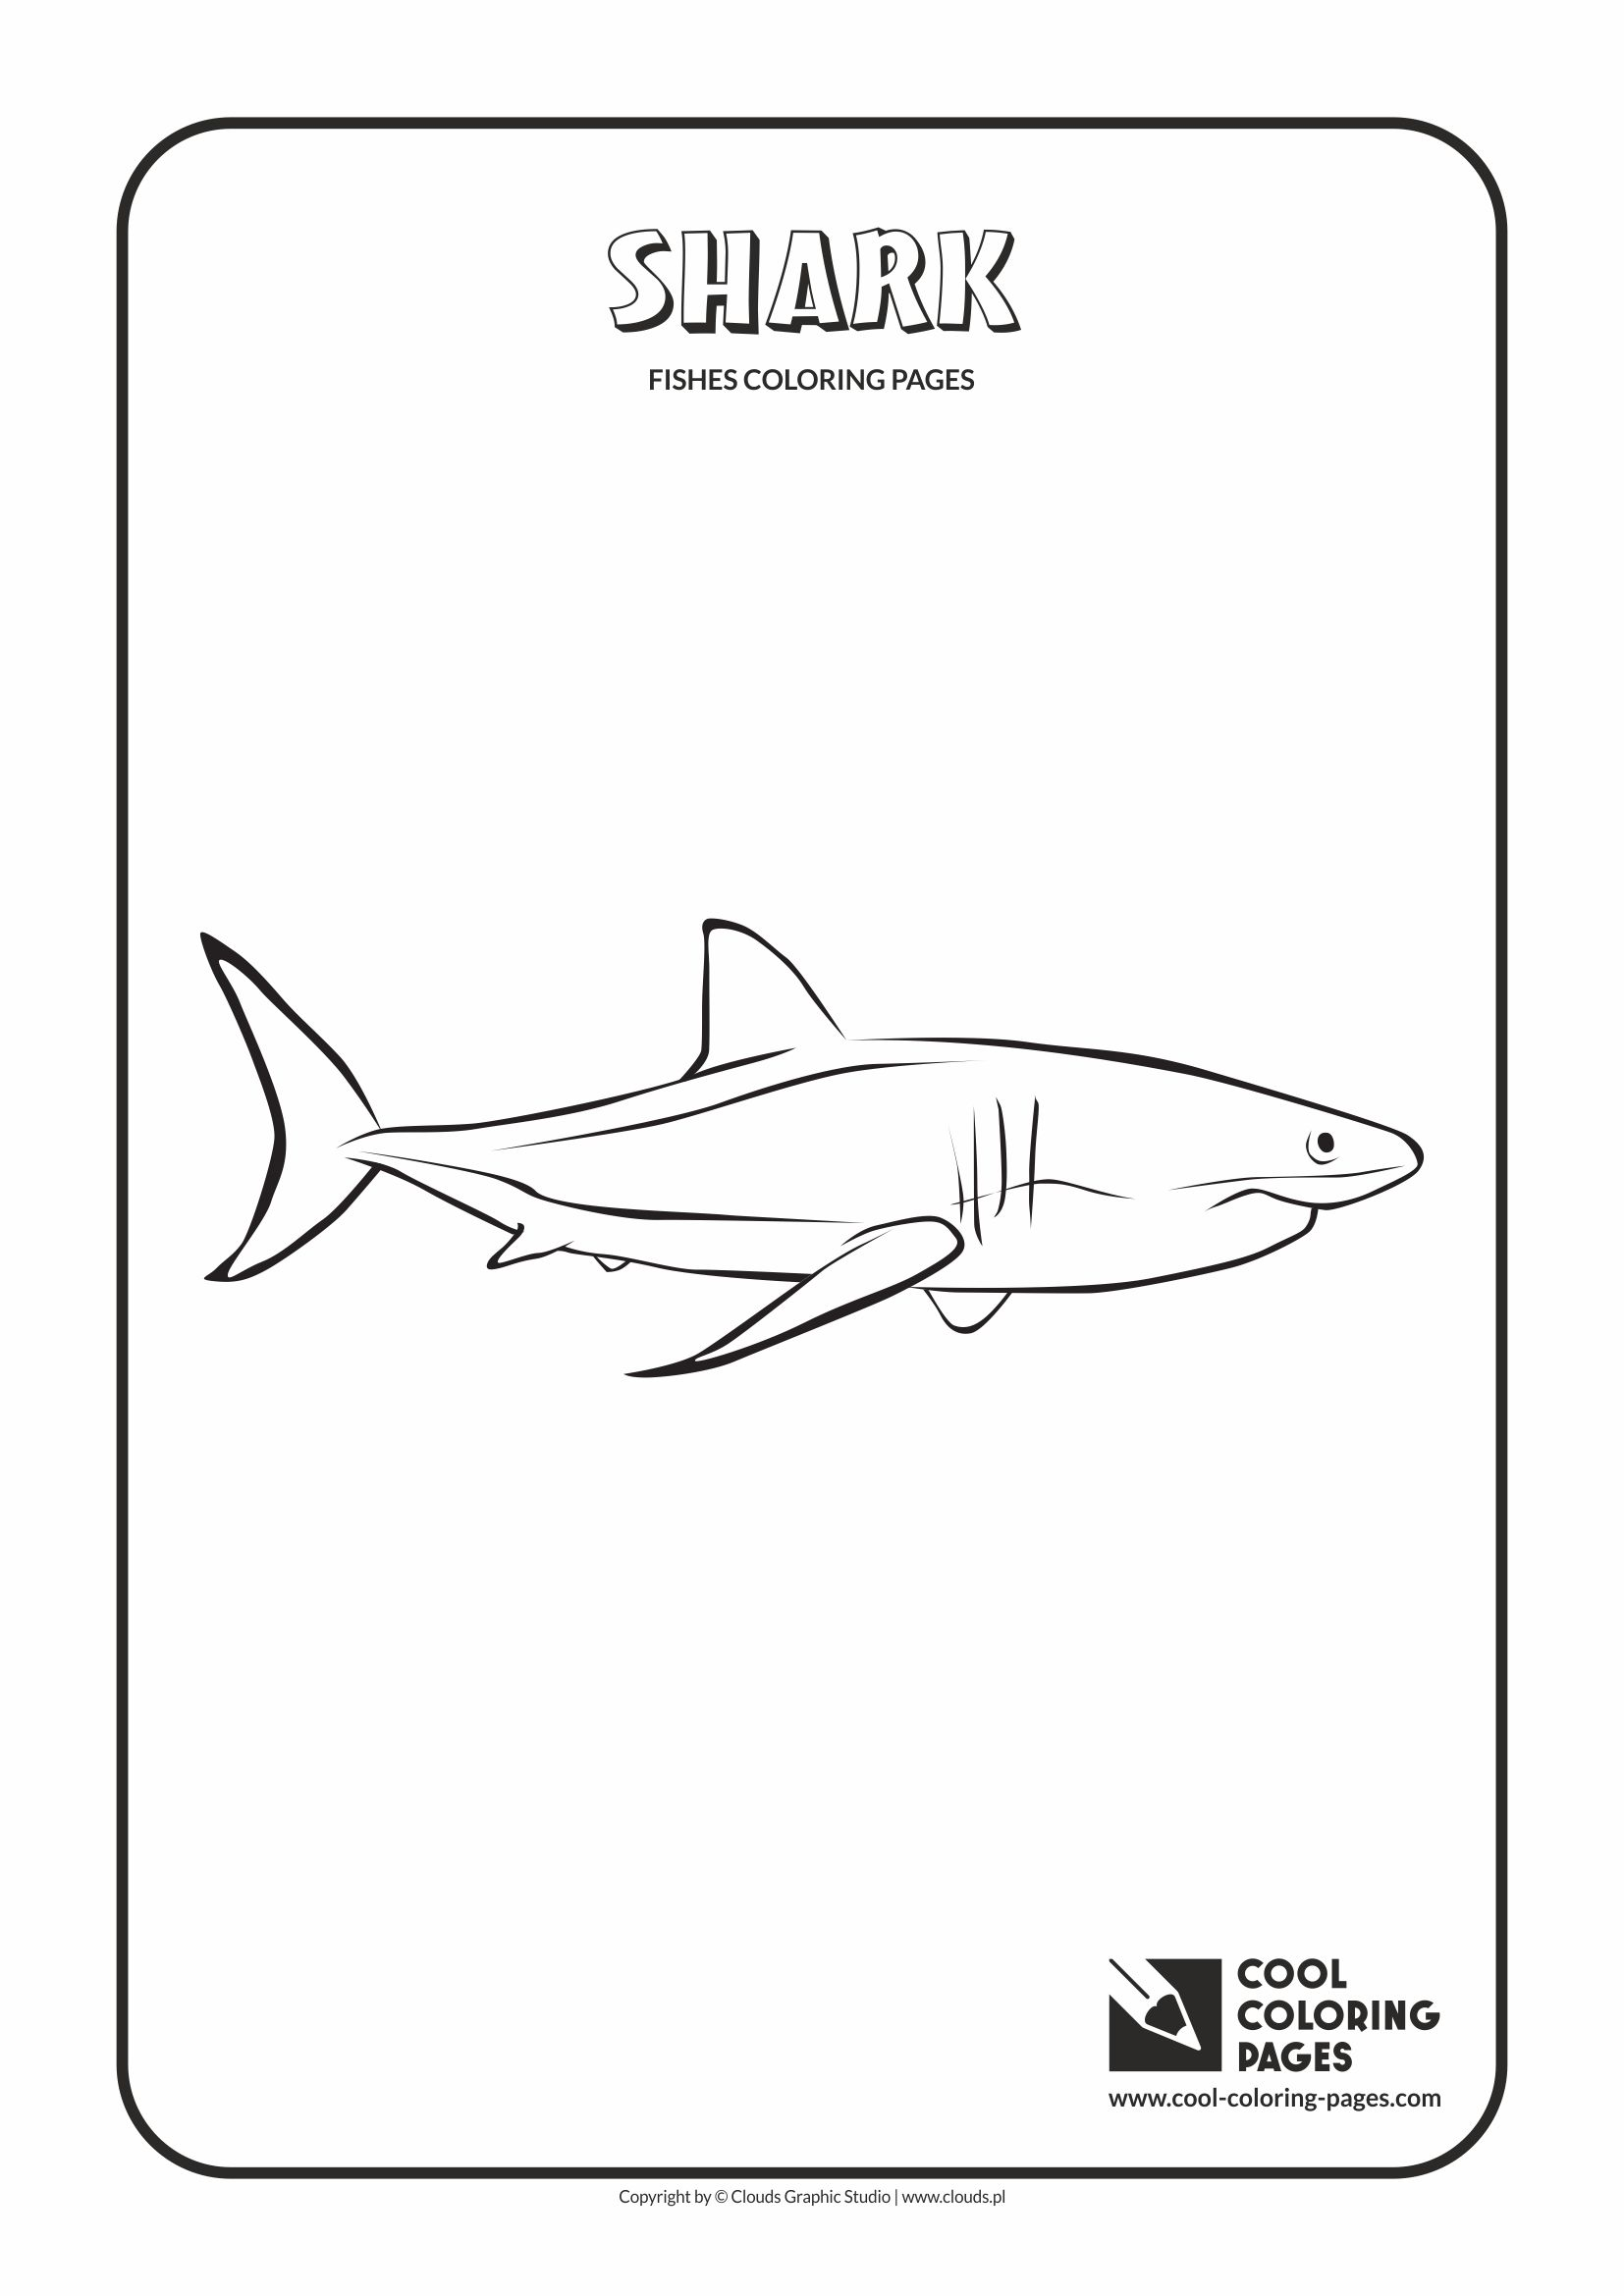 Cool Coloring Pages - Animals / Shark / Coloring page with shark